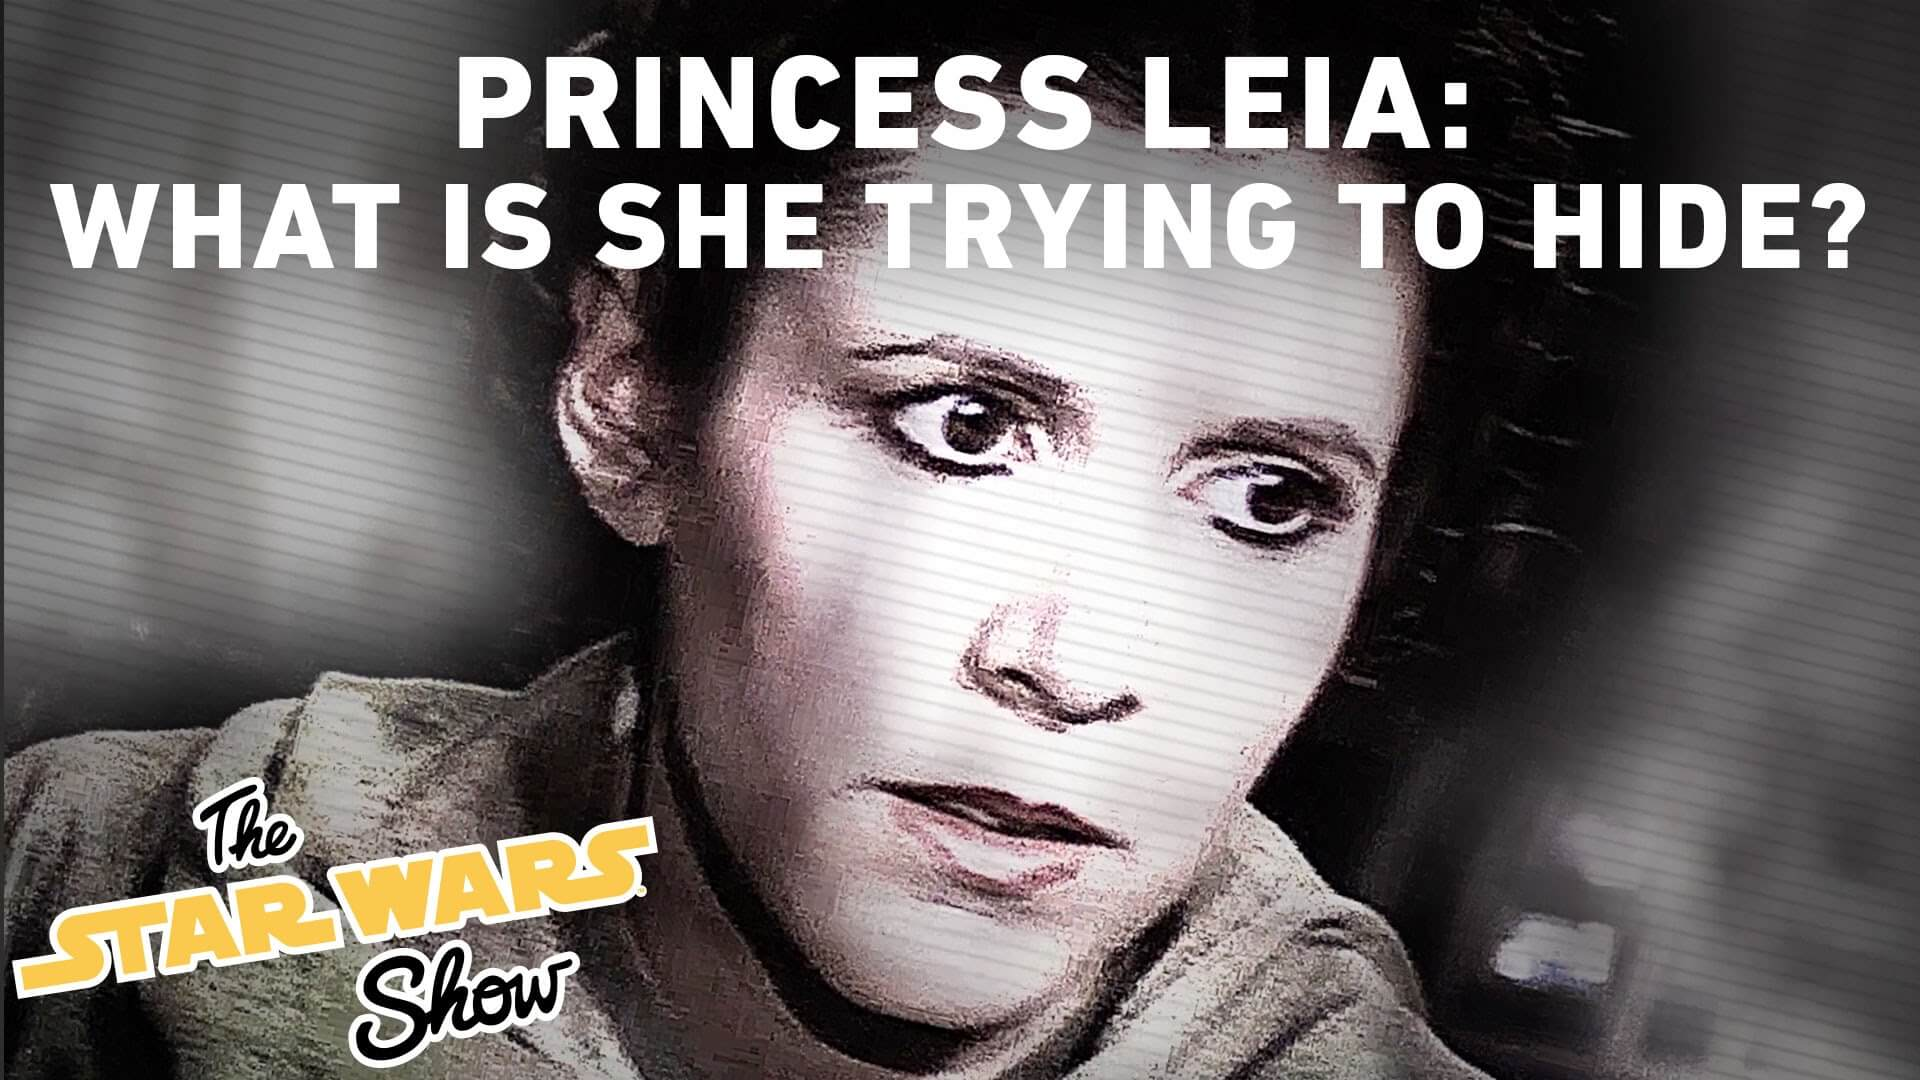 Princess Leia Has An Attack Ad Directed At Her